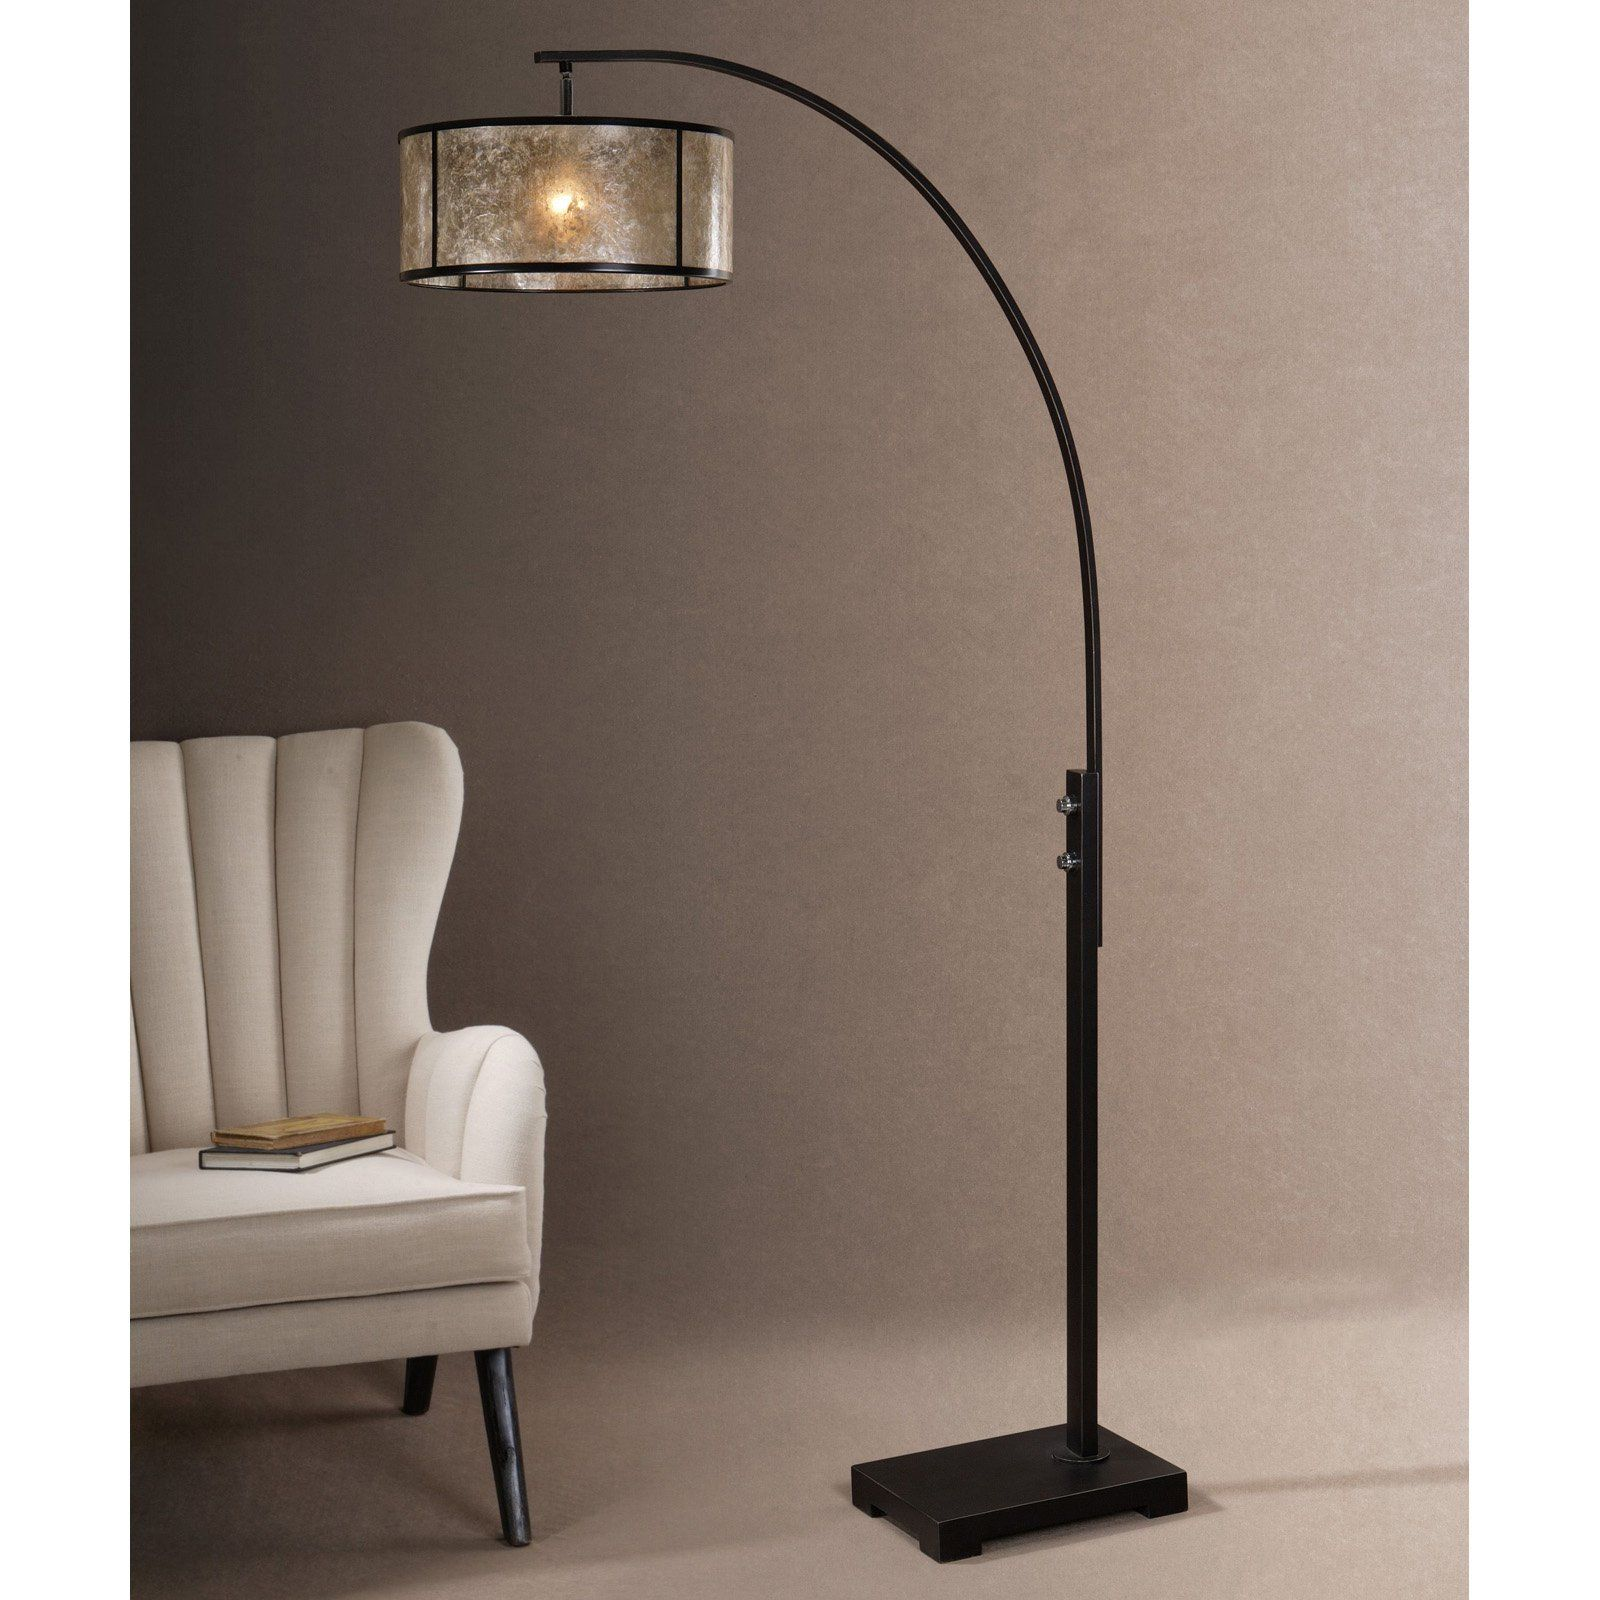 Have to have it uttermost cairano 28597 1 drum shade floor lamp uttermost cairano 28597 1 drum shade floor lamp 4114 aloadofball Image collections